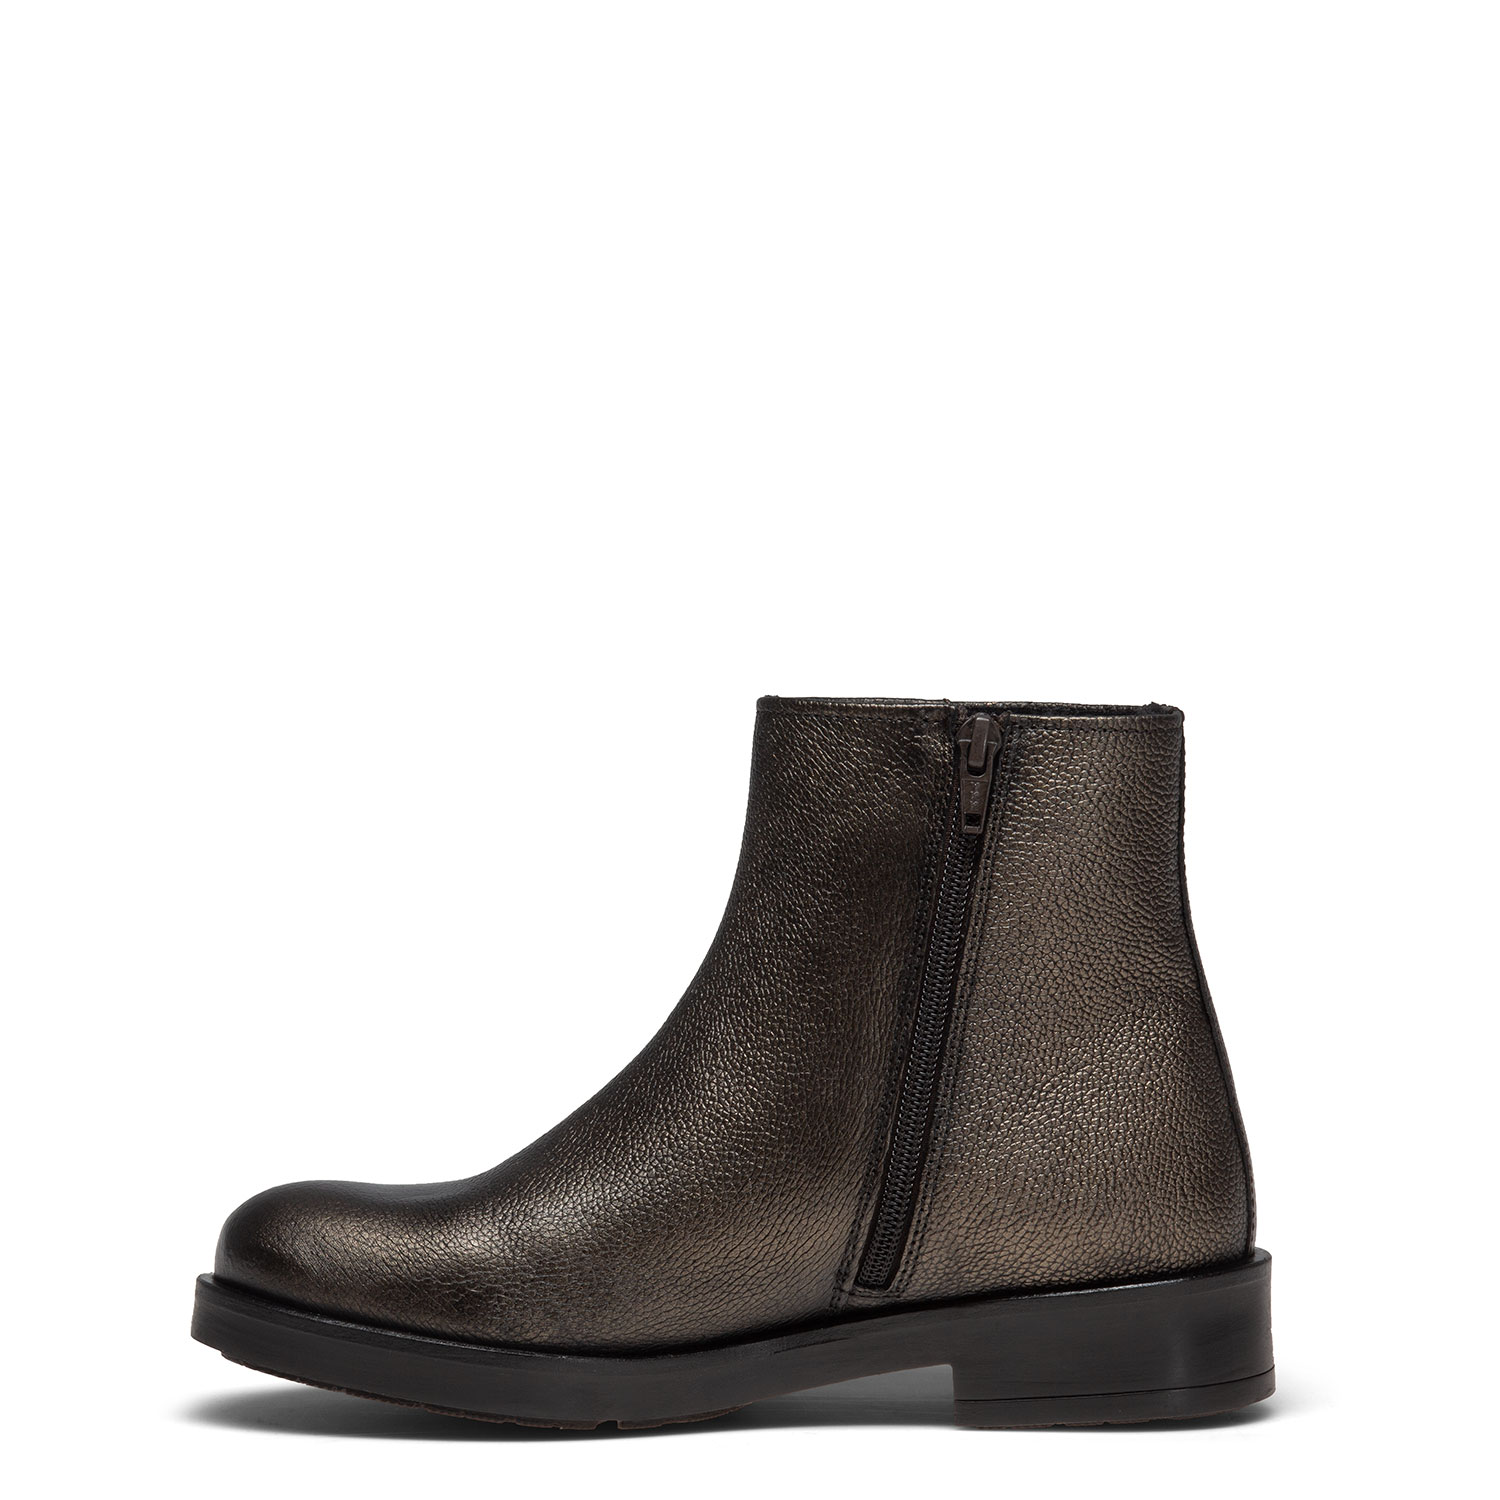 Women's ankle boots PAZOLINI IA-X5521-9